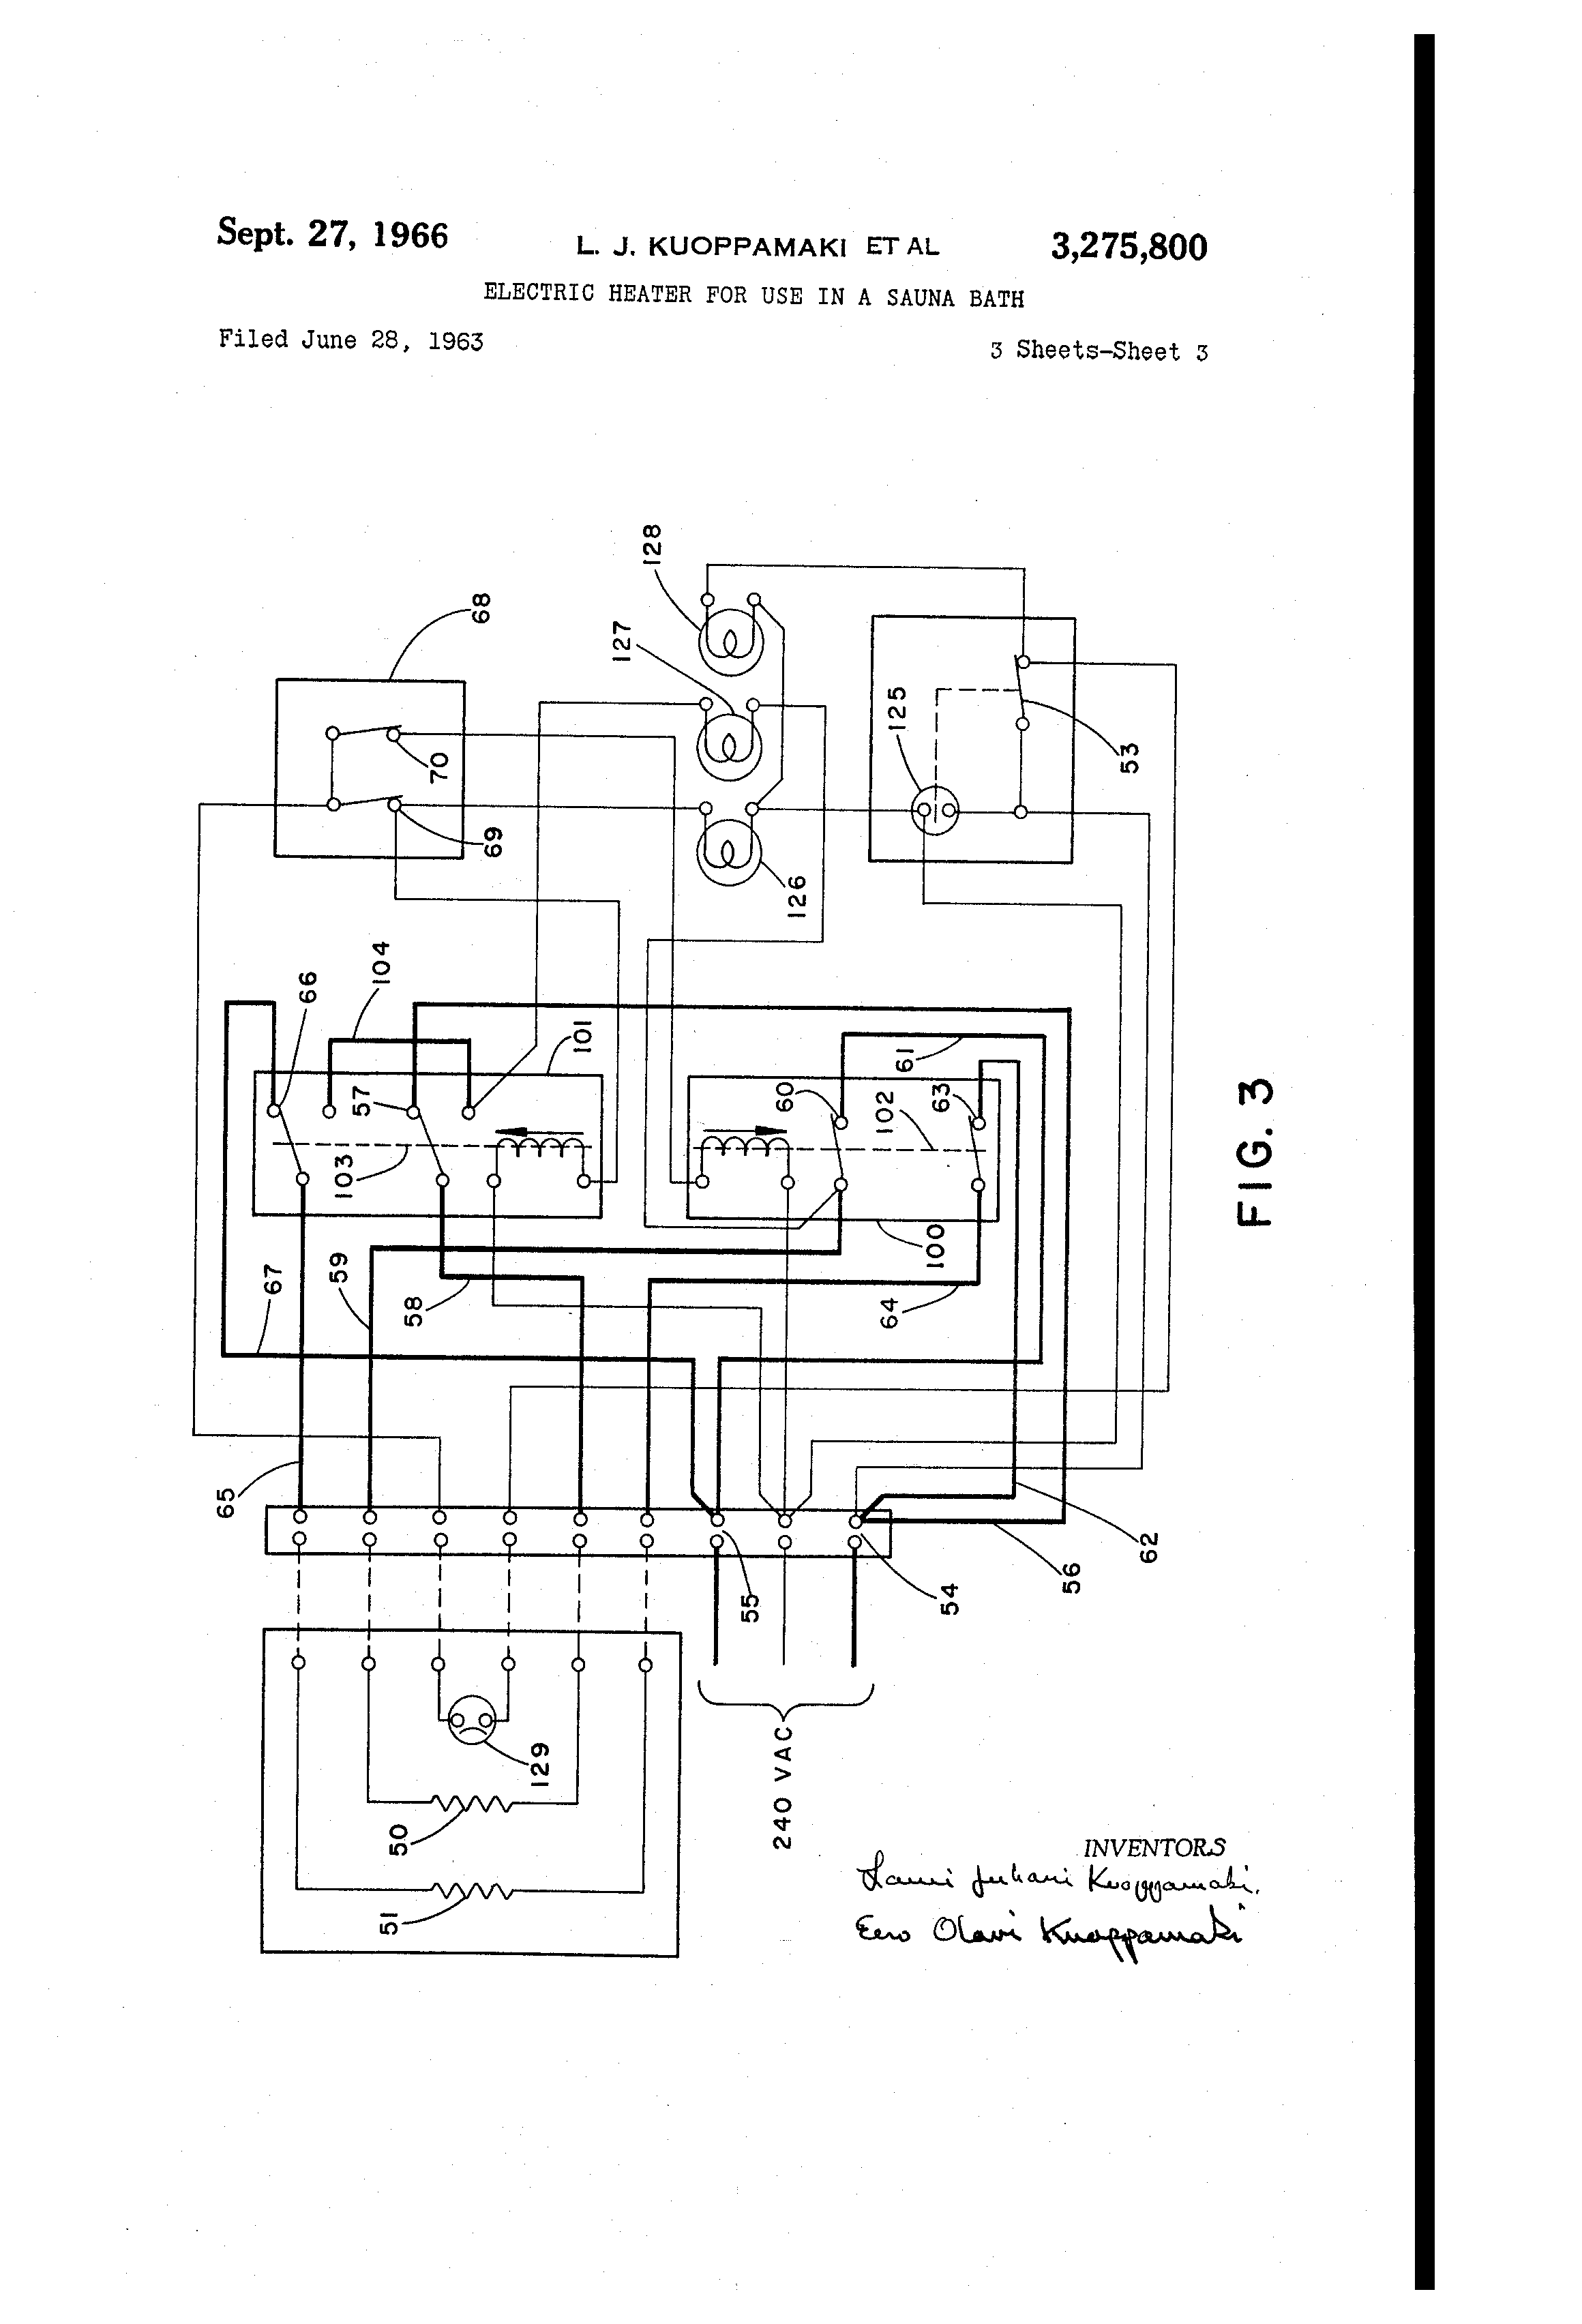 US3275800 2 patent us3275800 electric heater for use in a sauna bath sauna heater wiring diagram at panicattacktreatment.co